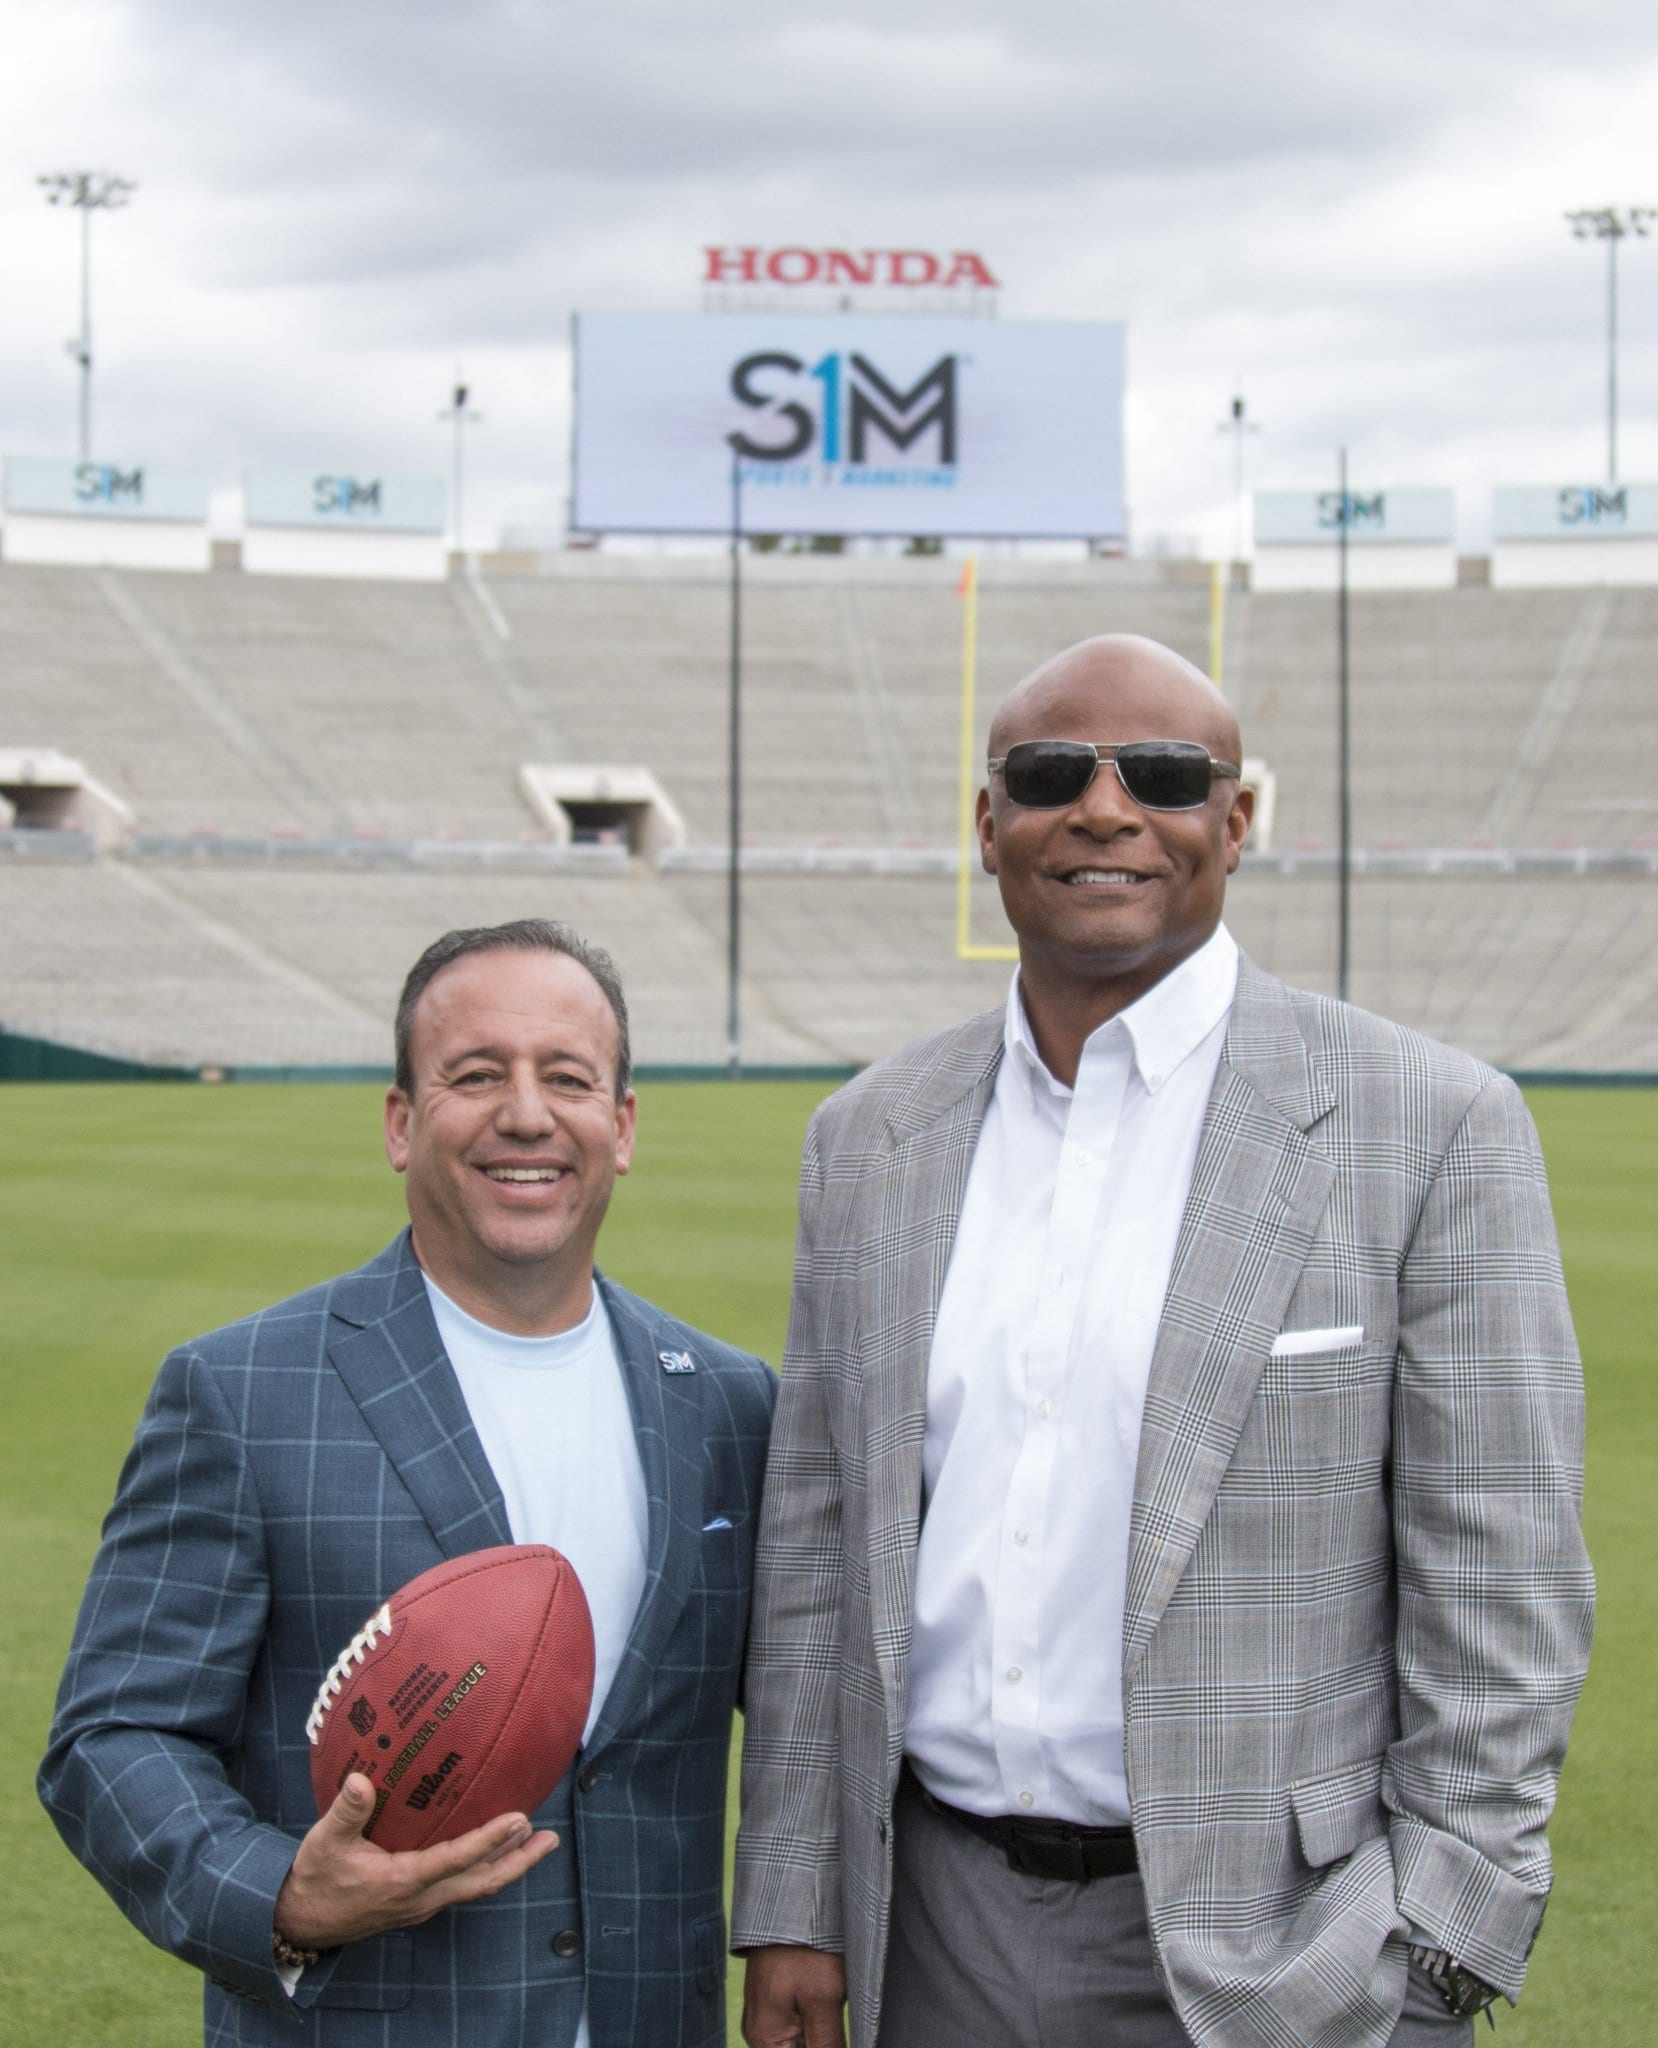 Two men in suits standing on a football field